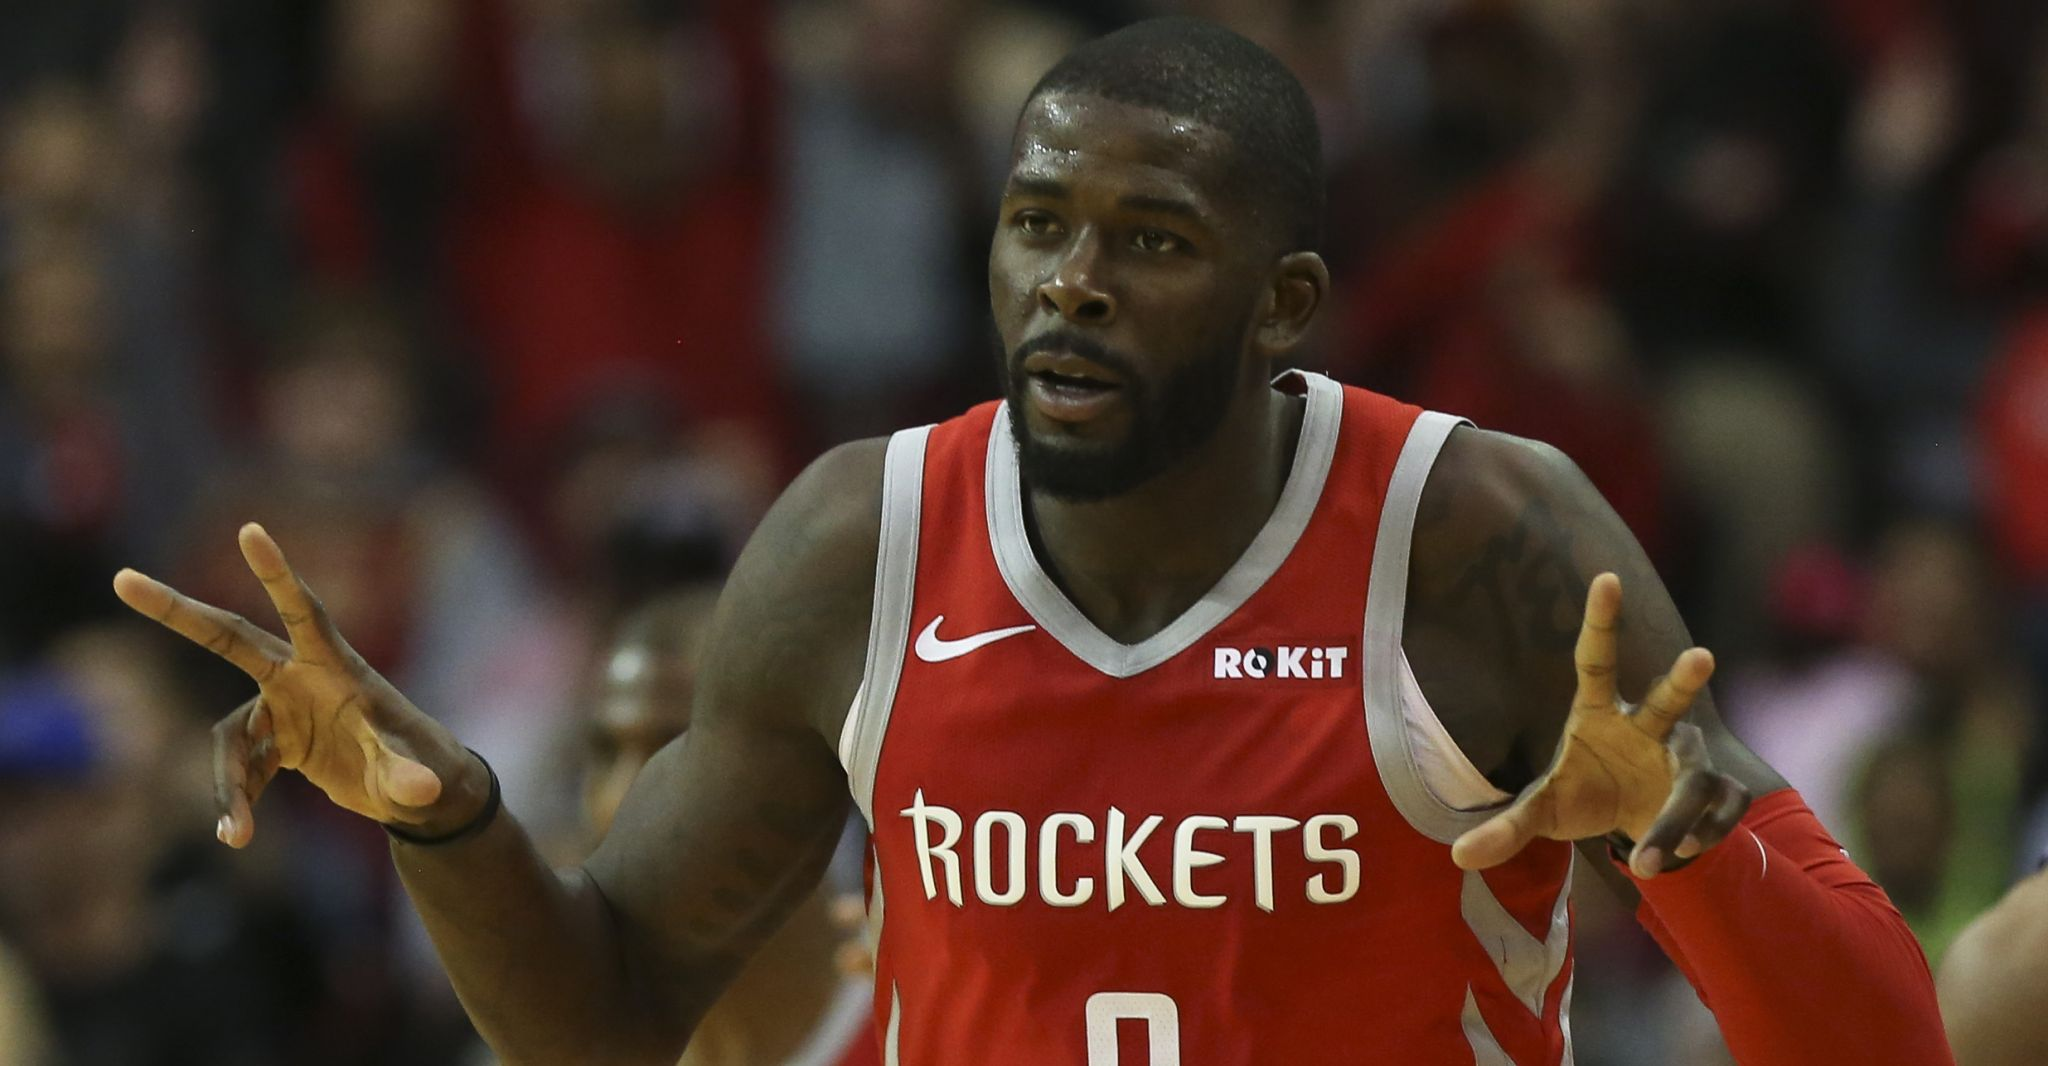 Source: Rockets to trade James Ennis III to 76ers